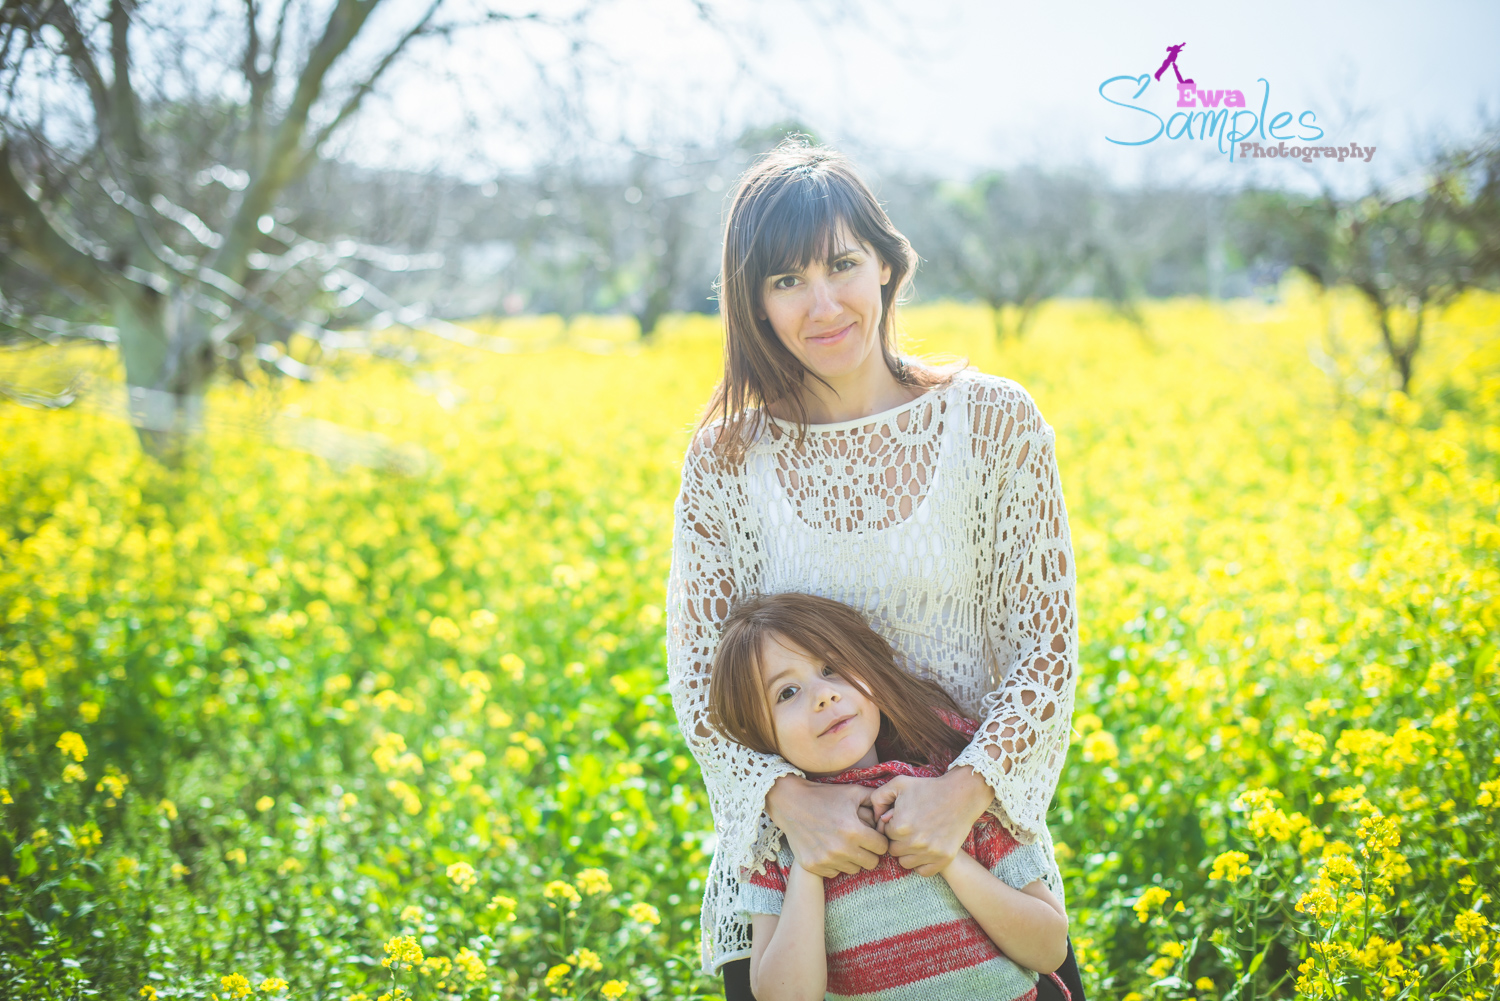 family_portrait_san_jose_cupertino__ewa_samples_photography-2